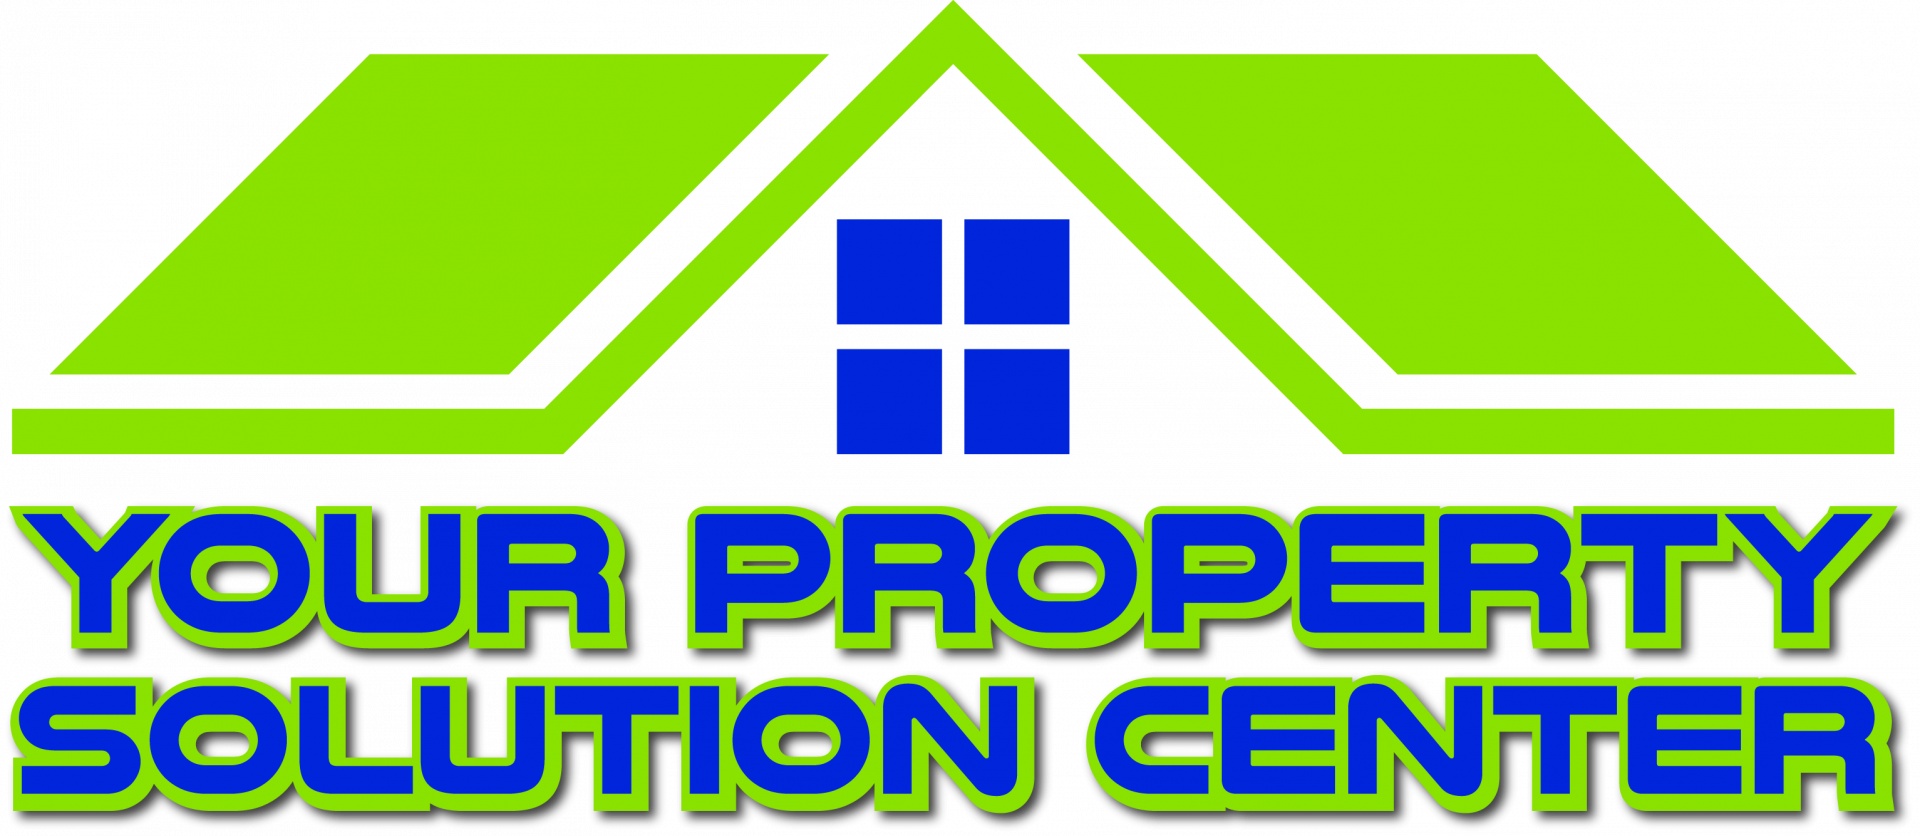 Your Property Solution Center  logo